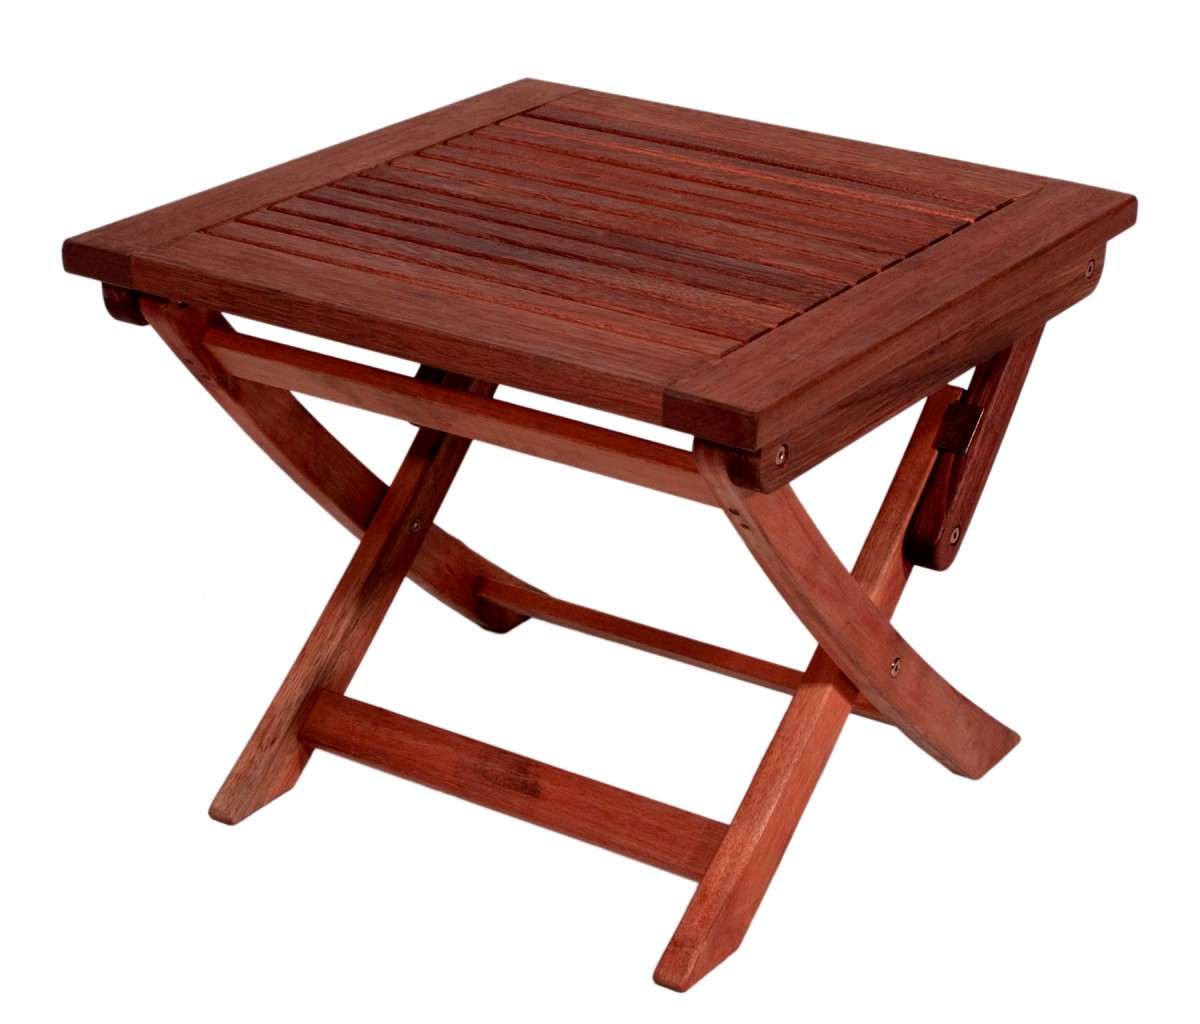 Table basse sumatra mobilier location - Petite table ronde pliante ...